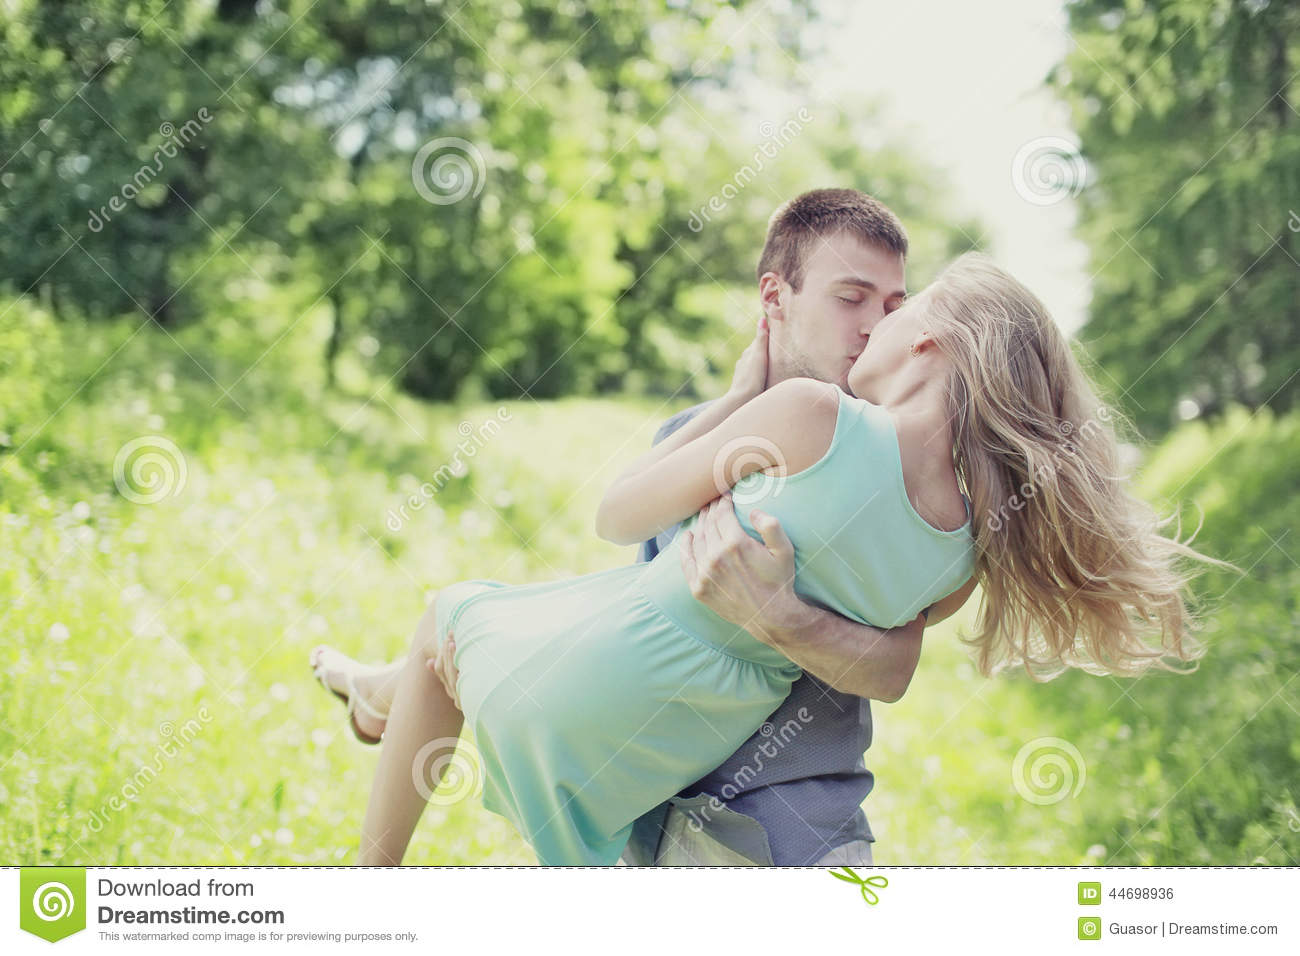 Tender sweet kiss couple outdoors, love, relationships